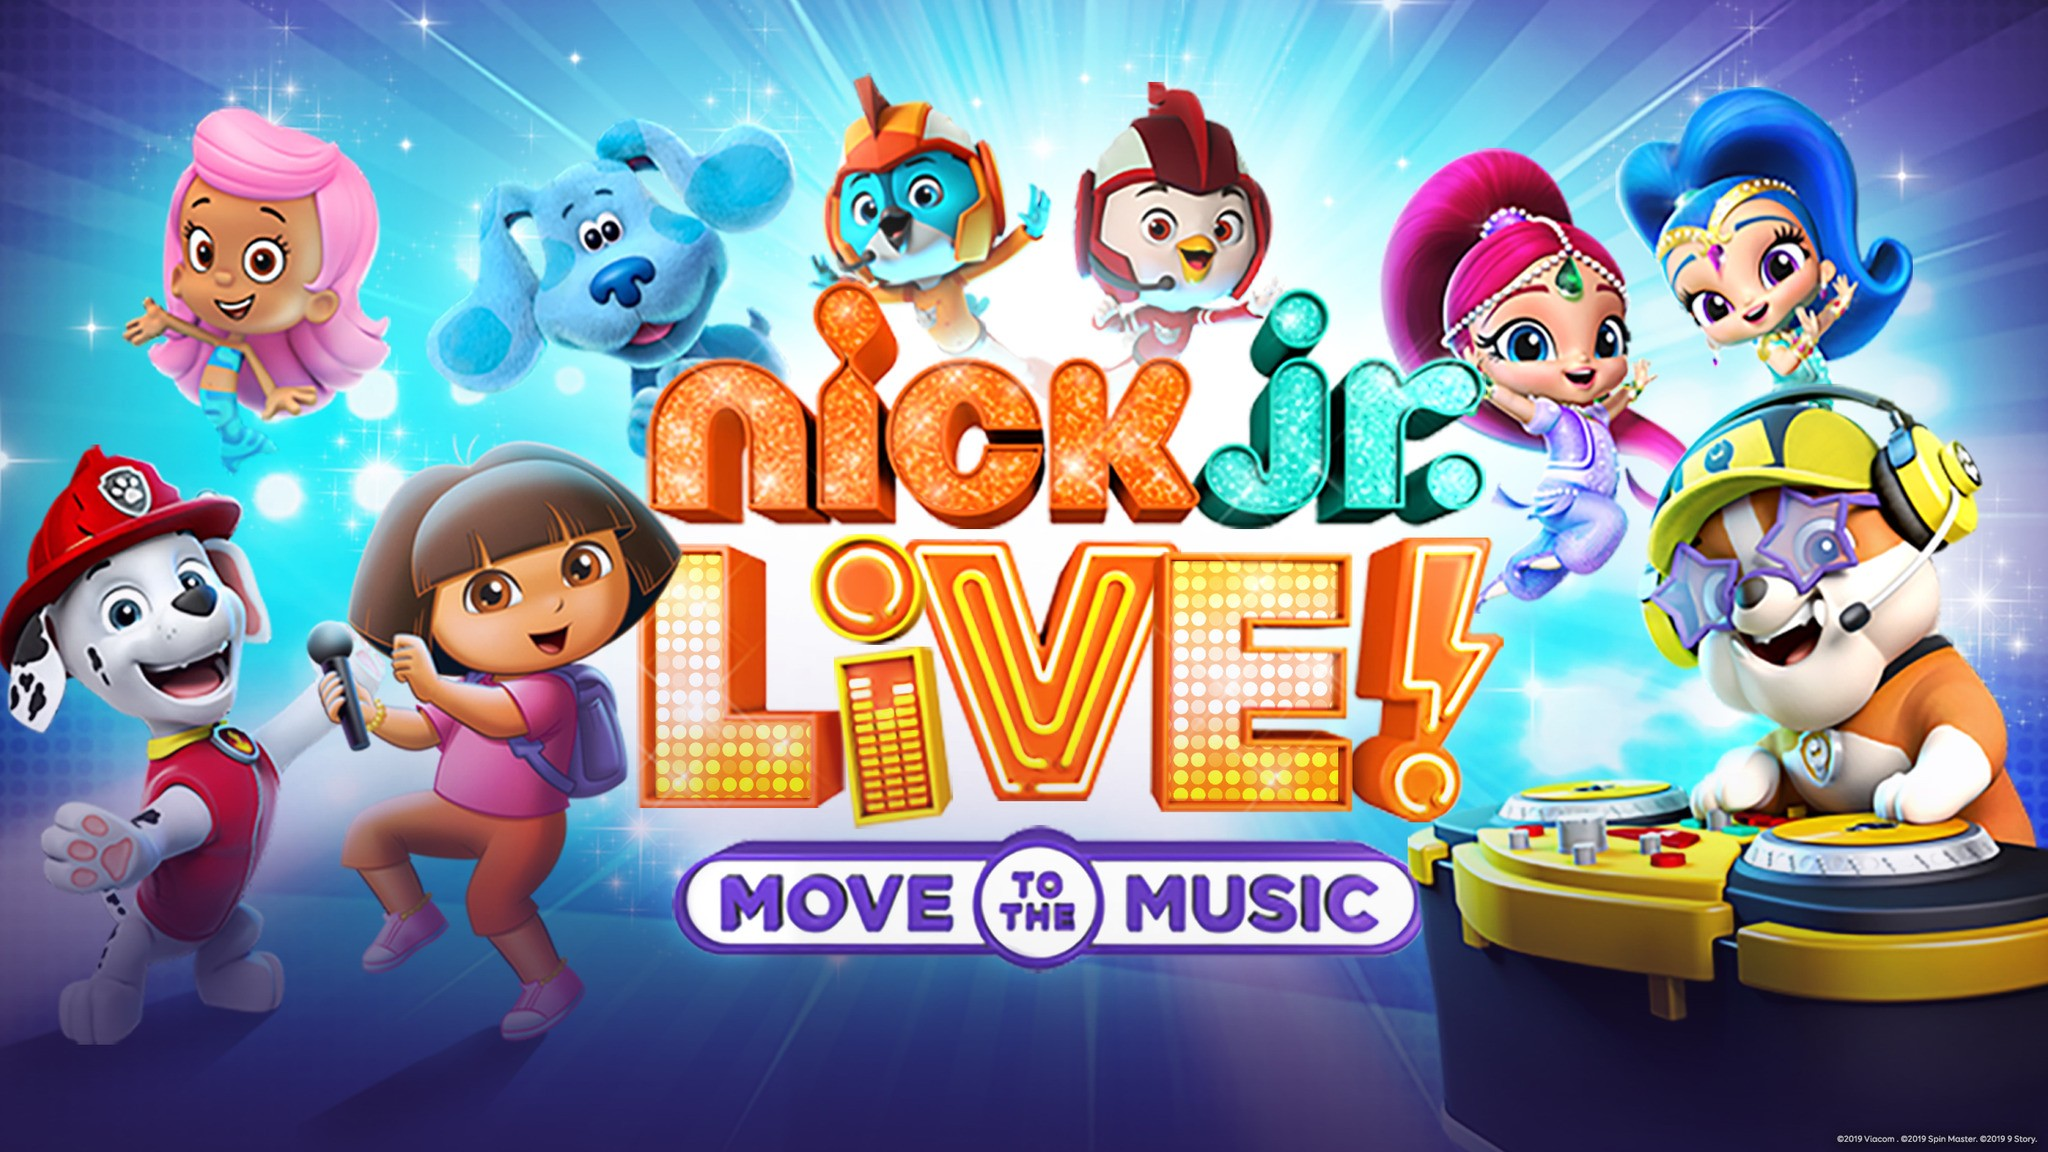 Nick Jr  Live! Move to the Music at McCaw Hall in Seattle, WA on Sun